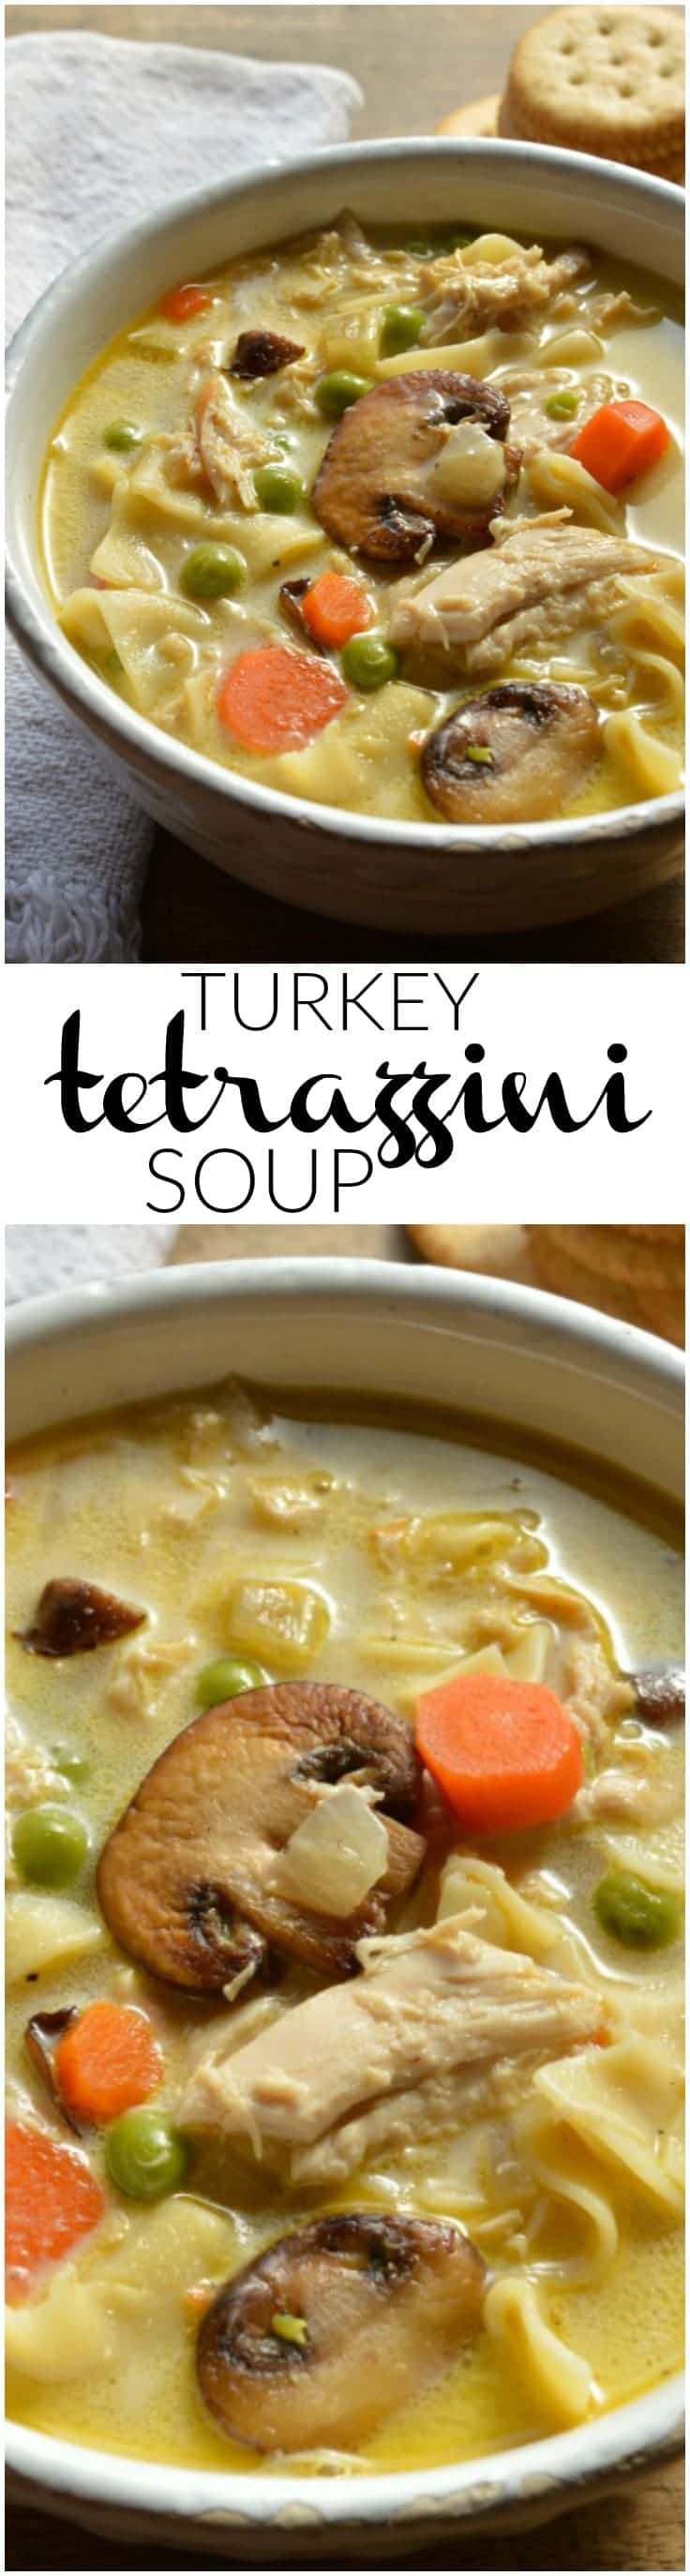 The perfect way to use up Thanksgiving leftovers! You can also make this Turkey Tetrazzini Soup with leftover chicken or rotisserie chicken